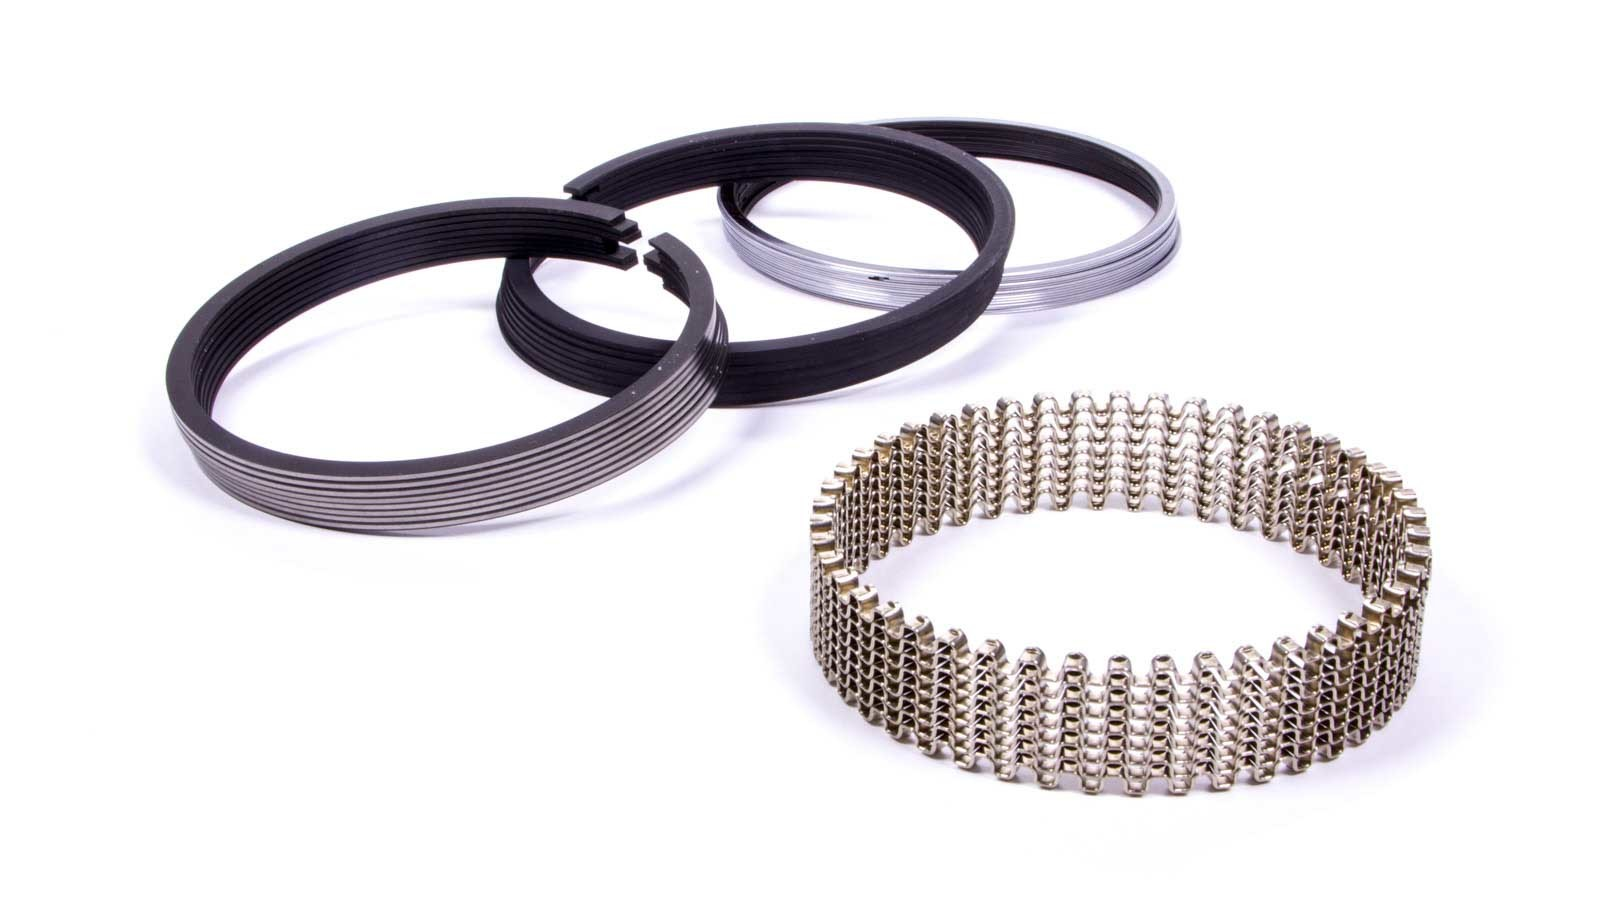 JE Pistons S100S8-4125-5 Piston Rings, Sportsman Series, 4.125 in Bore, File Fit, 1/16 x 1/16 x 3/16 in Thick, Standard Tension, Plasma Moly, 8 Cylinder, Kit